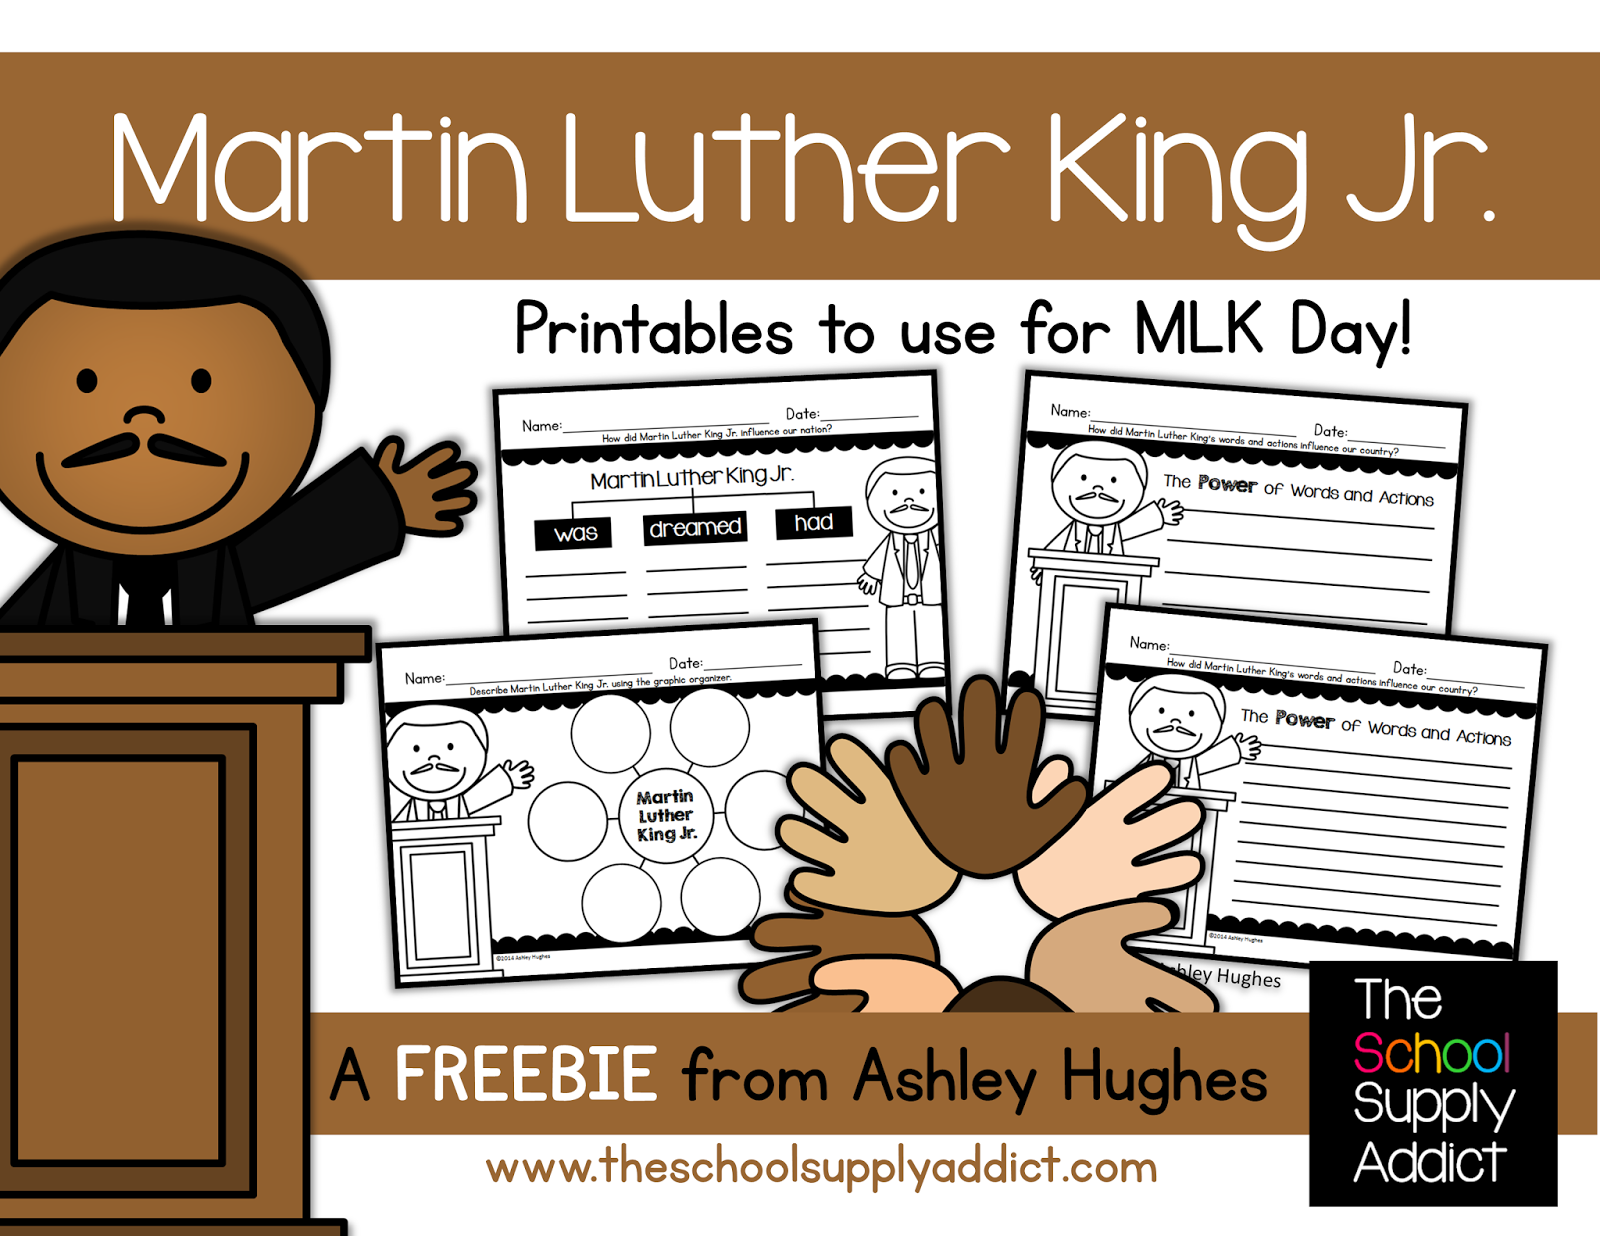 Martin Luther King Jr. Freebie from The School Supply Addict